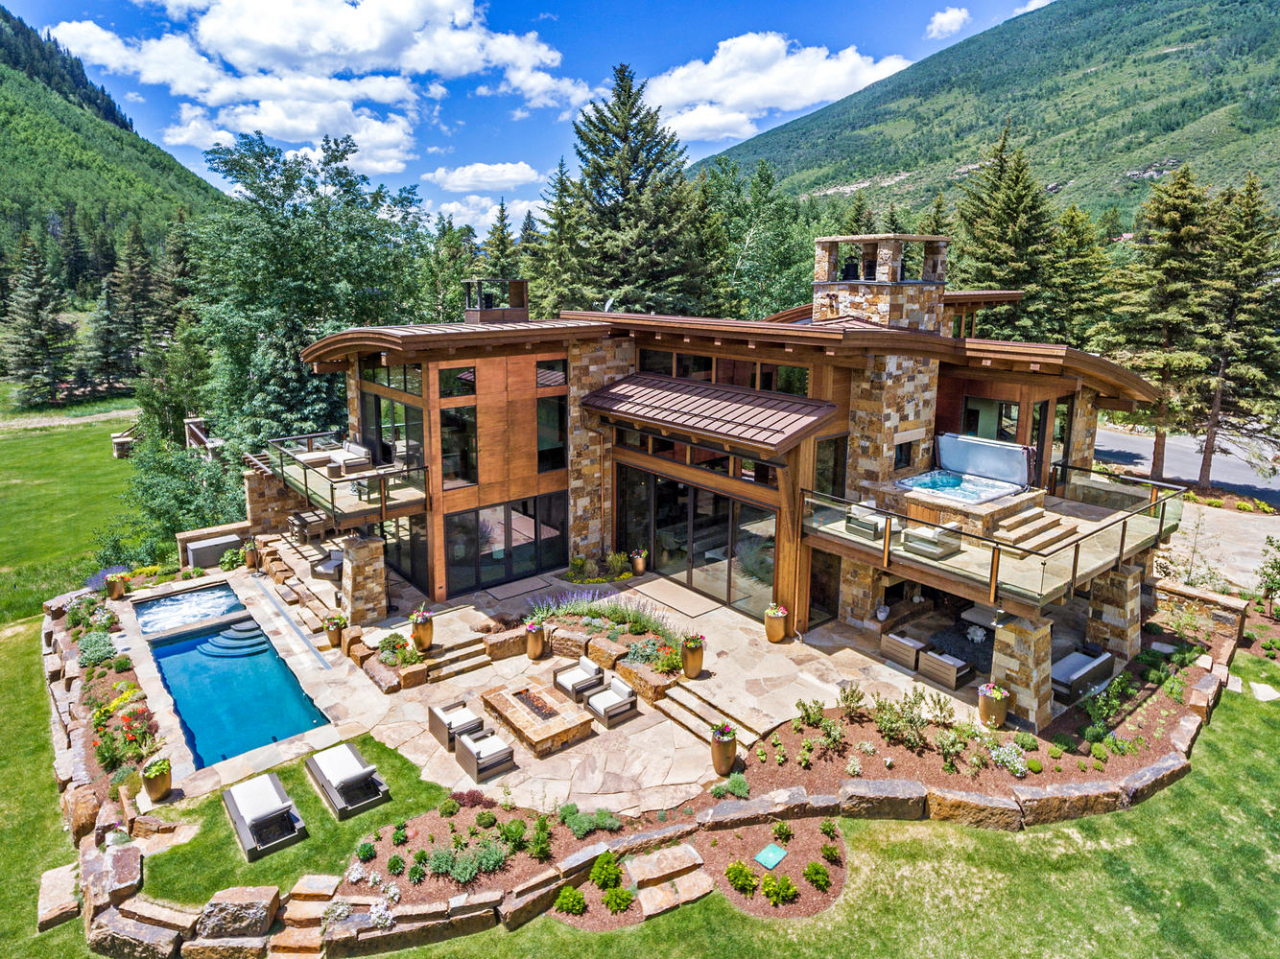 : LIV Sotheby's International Realty broker Tye Stockton represents the sale of 2950 Booth Creek Drive in Vail, CO for $20,750,000.